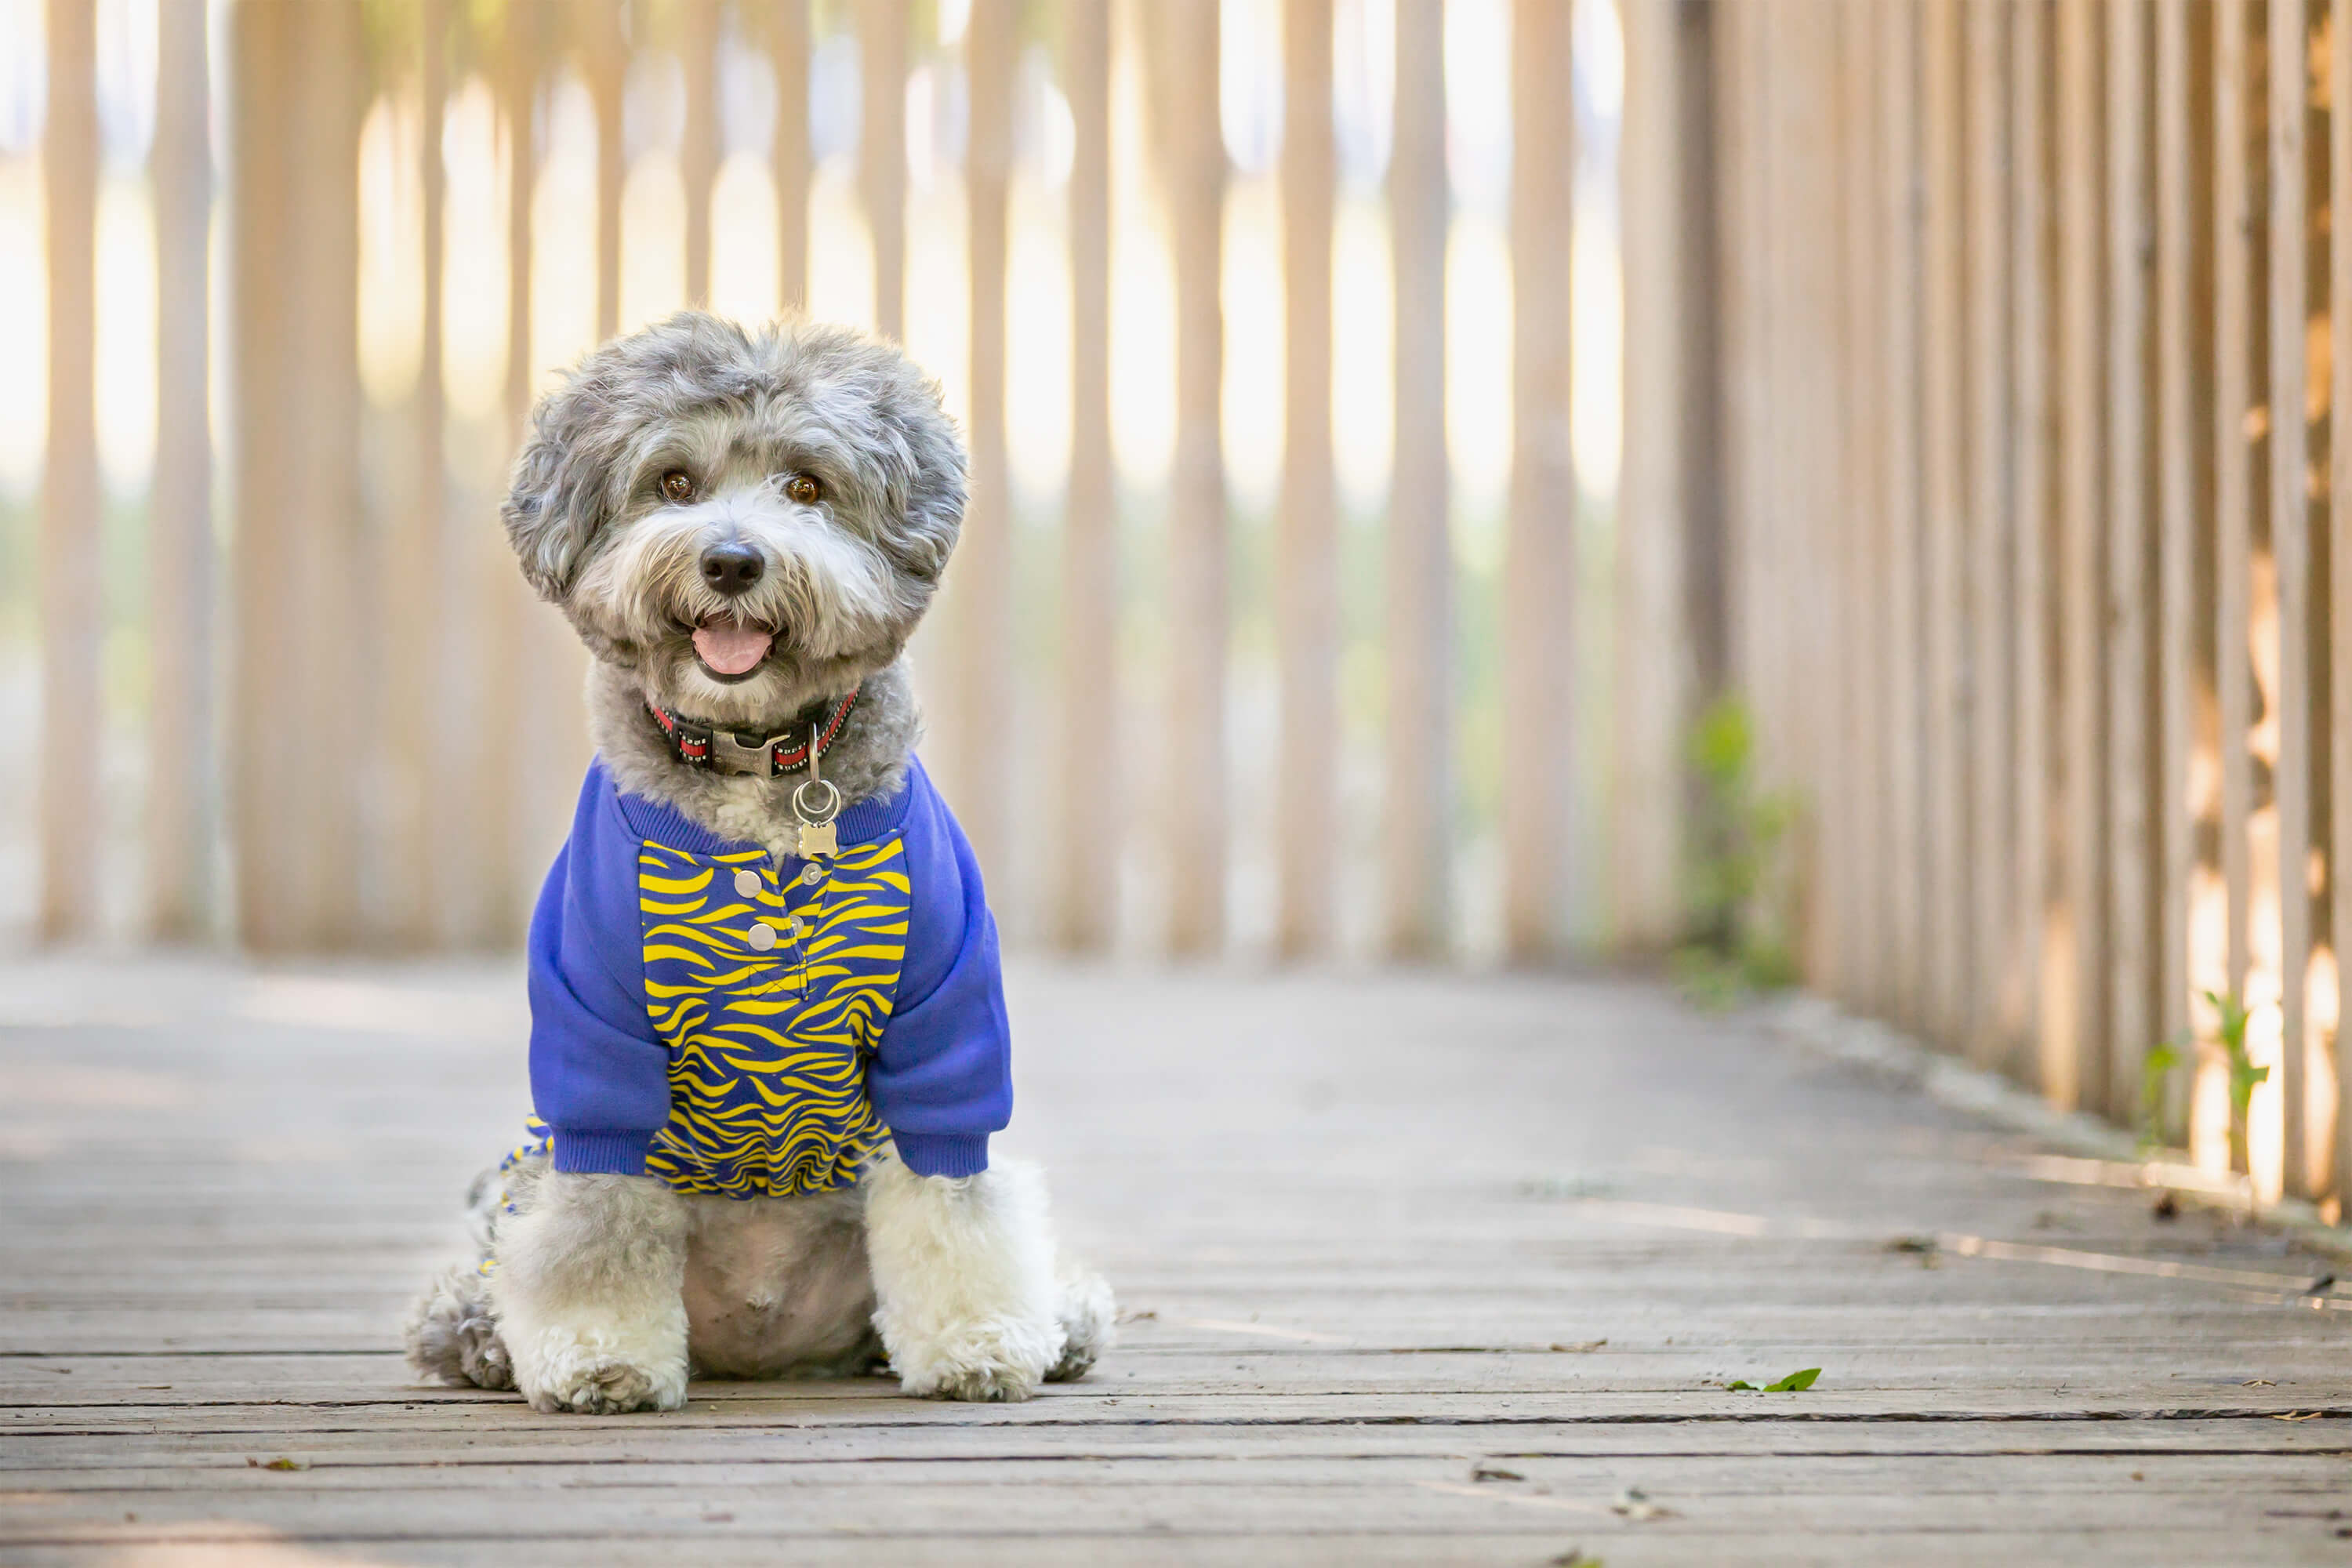 dog on bridge in pjs for dog accessories shoot